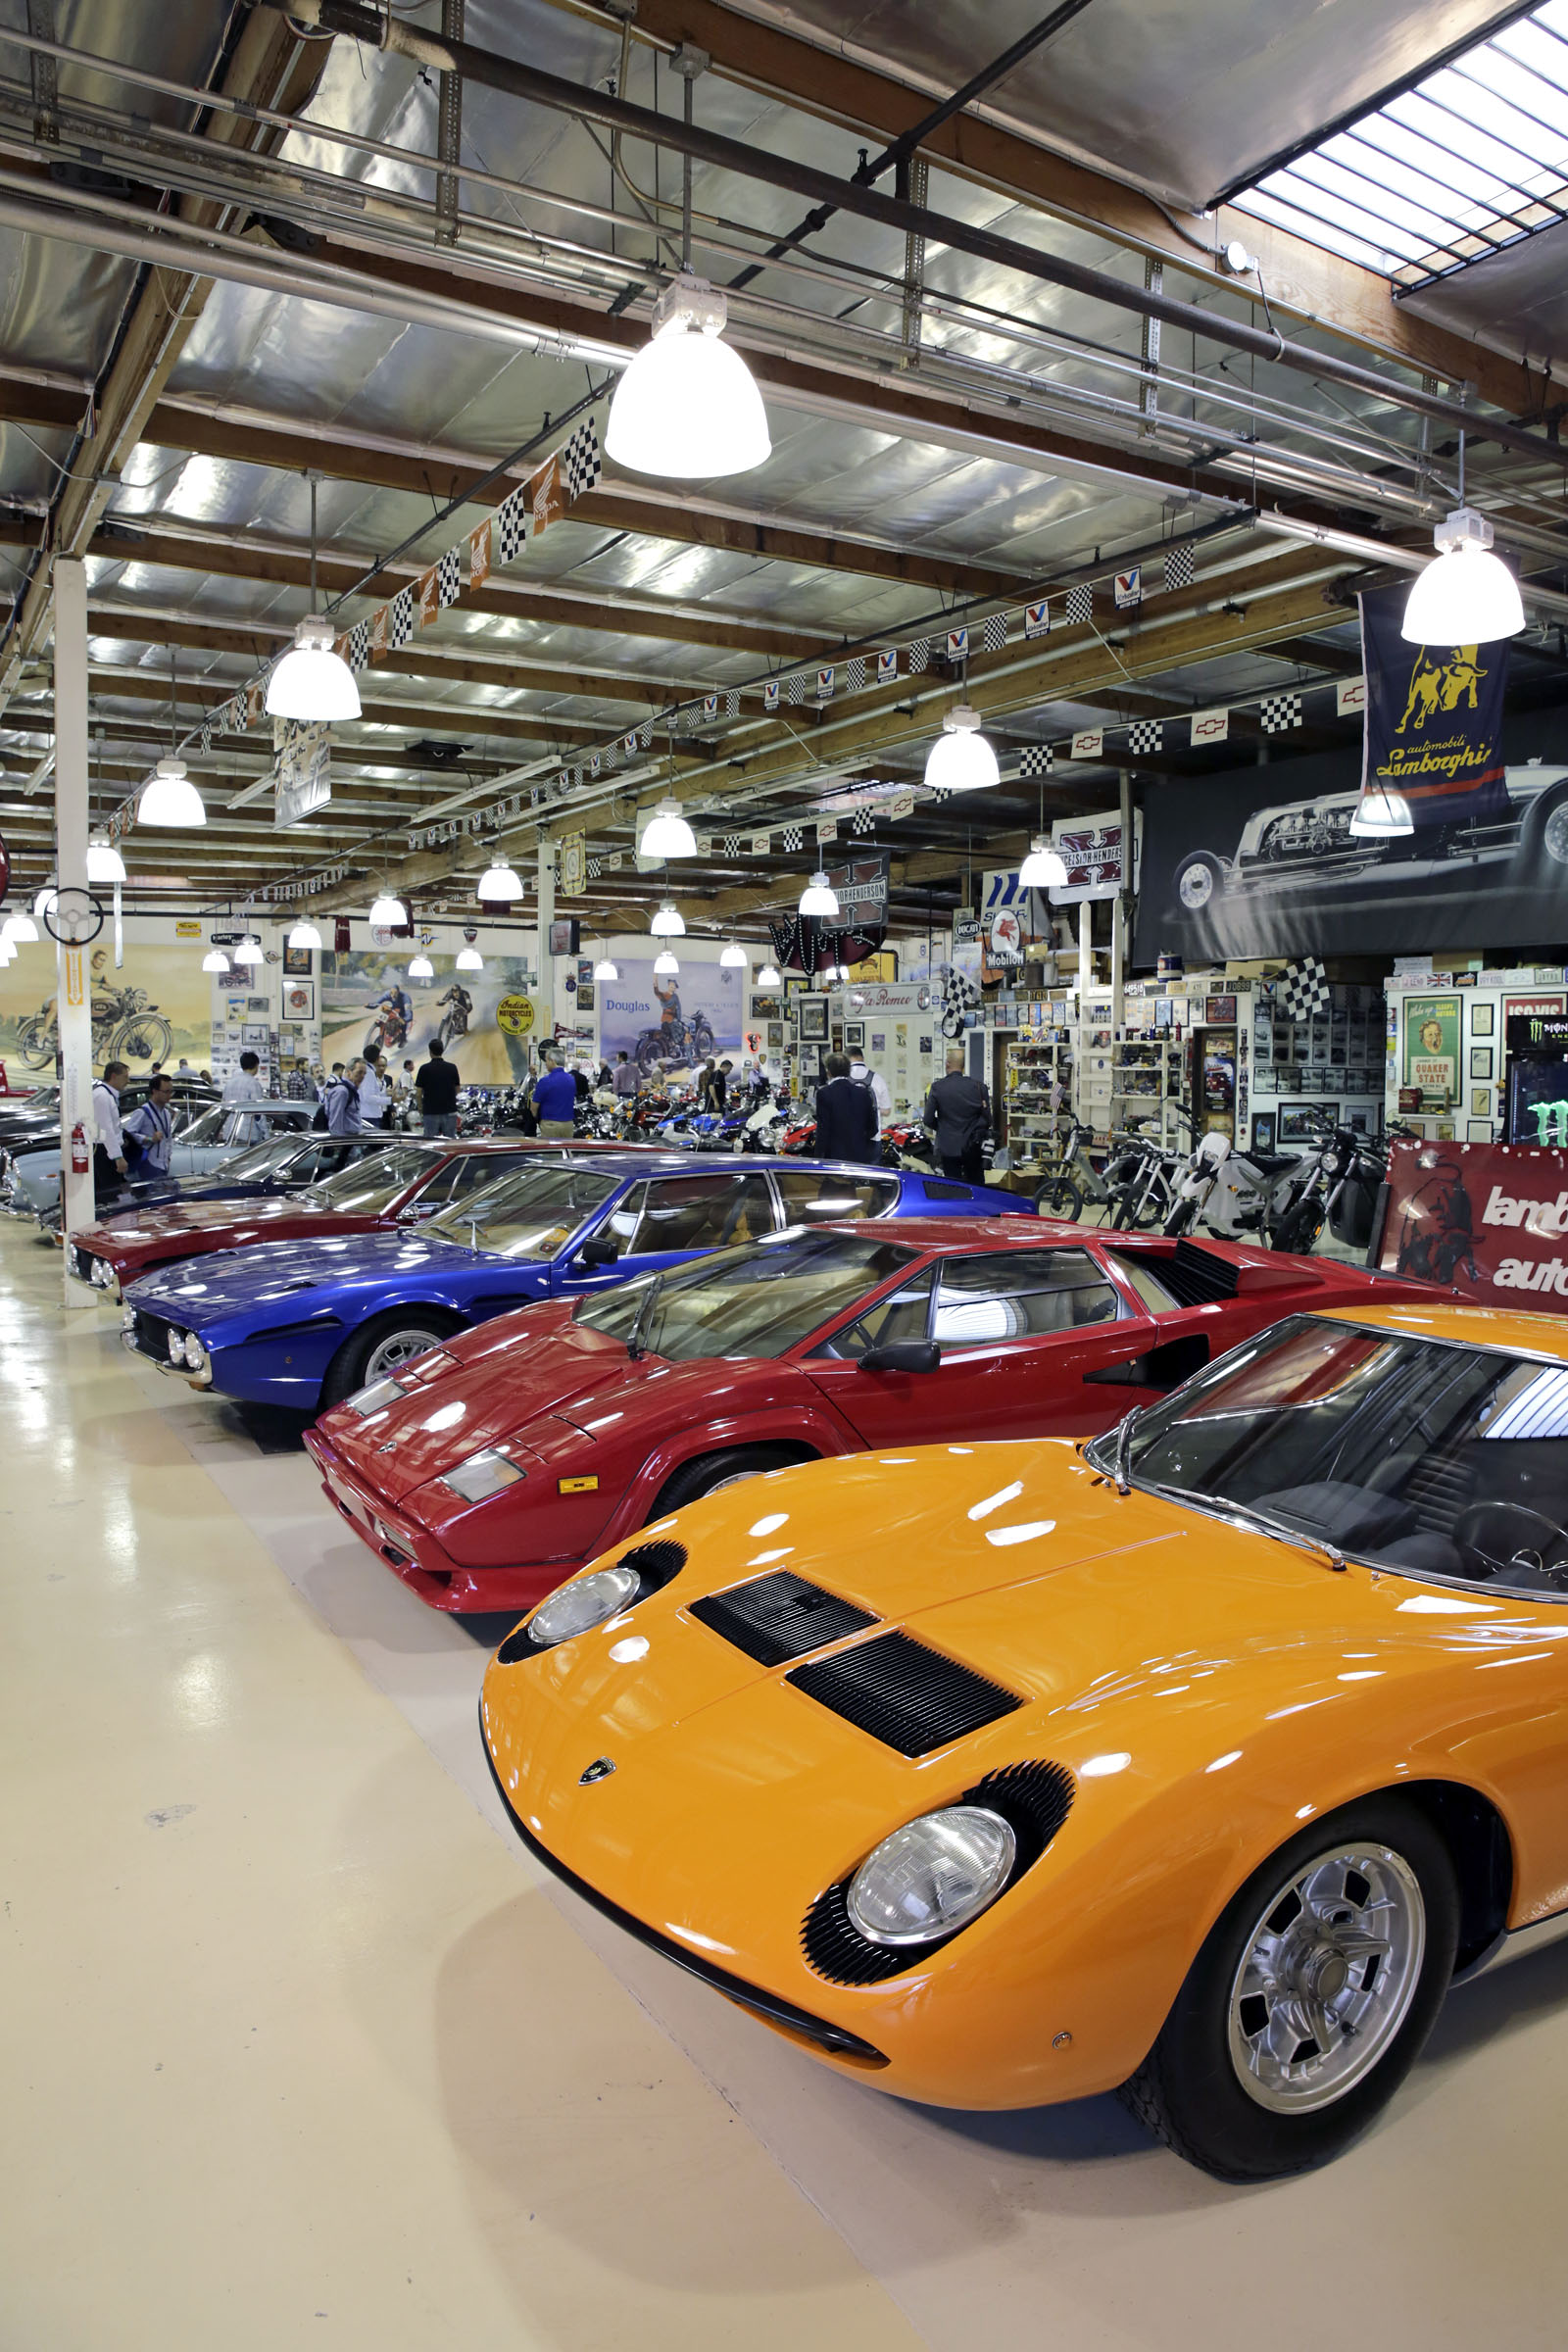 I Had a Rare Visit Inside Jay Leno's Garage. Here's What It Was Like